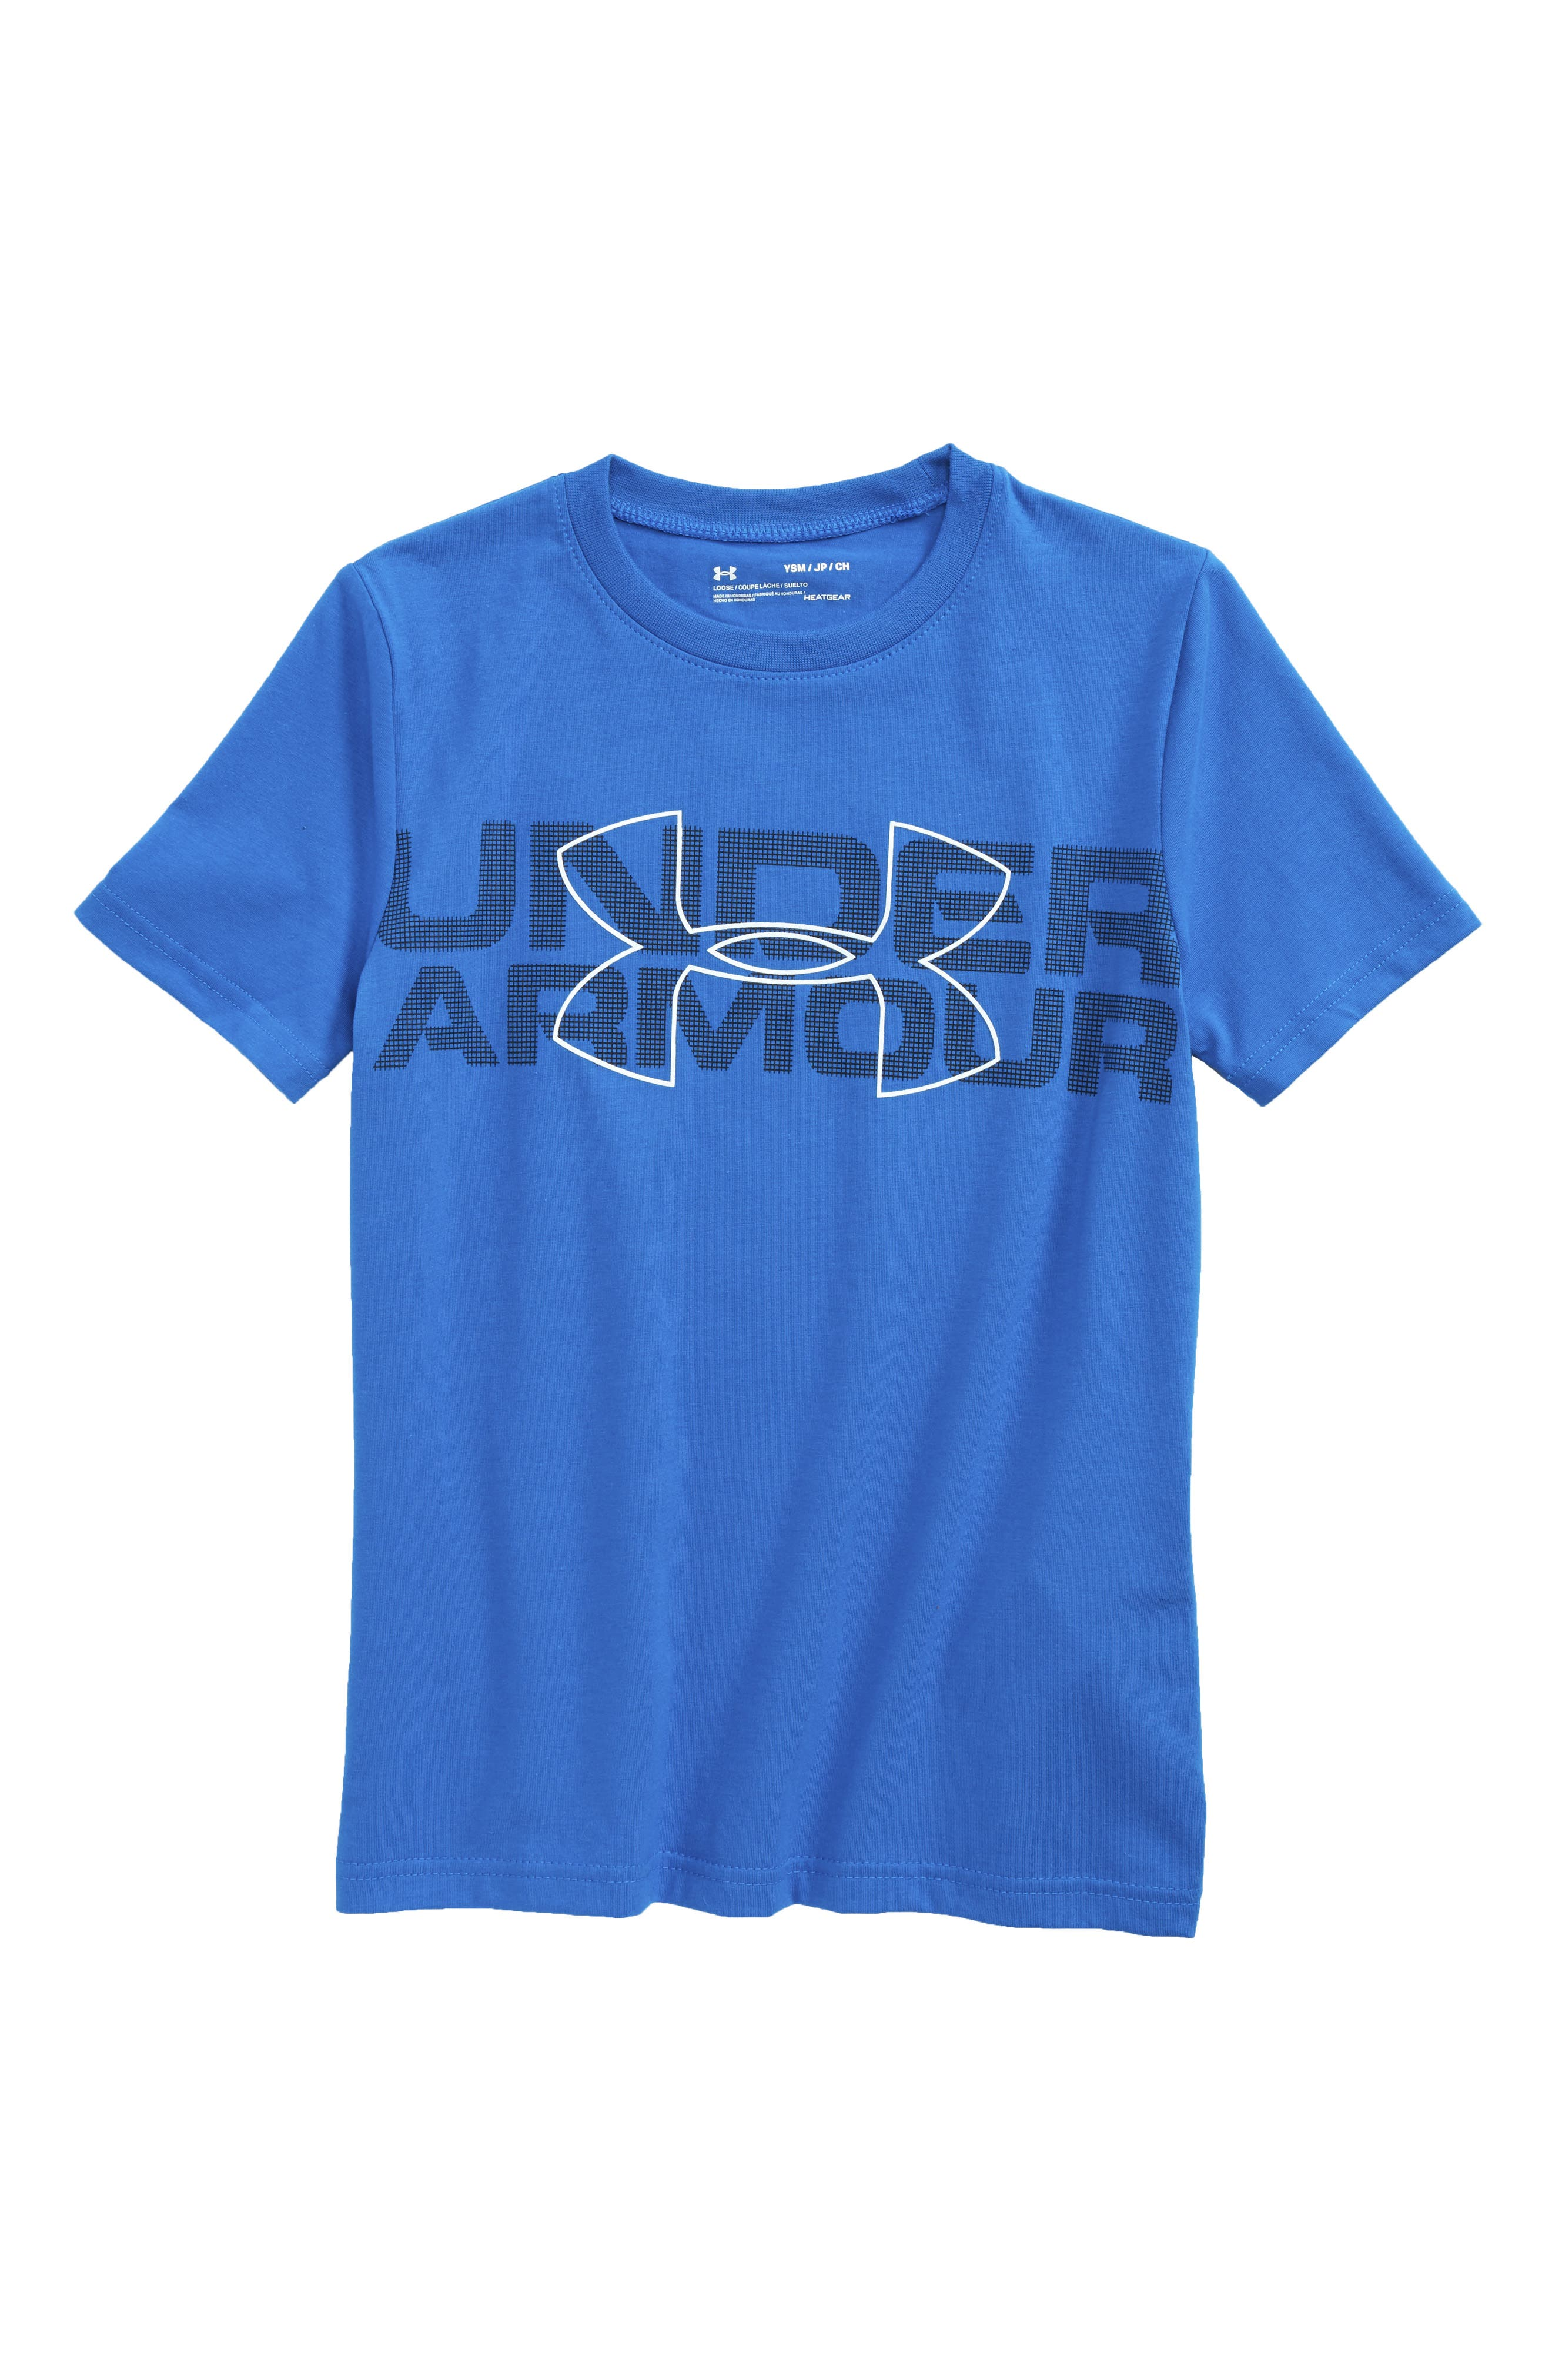 Alternate Image 1 Selected - Under Armour Duo Graphic T-Shirt (Big Boys)